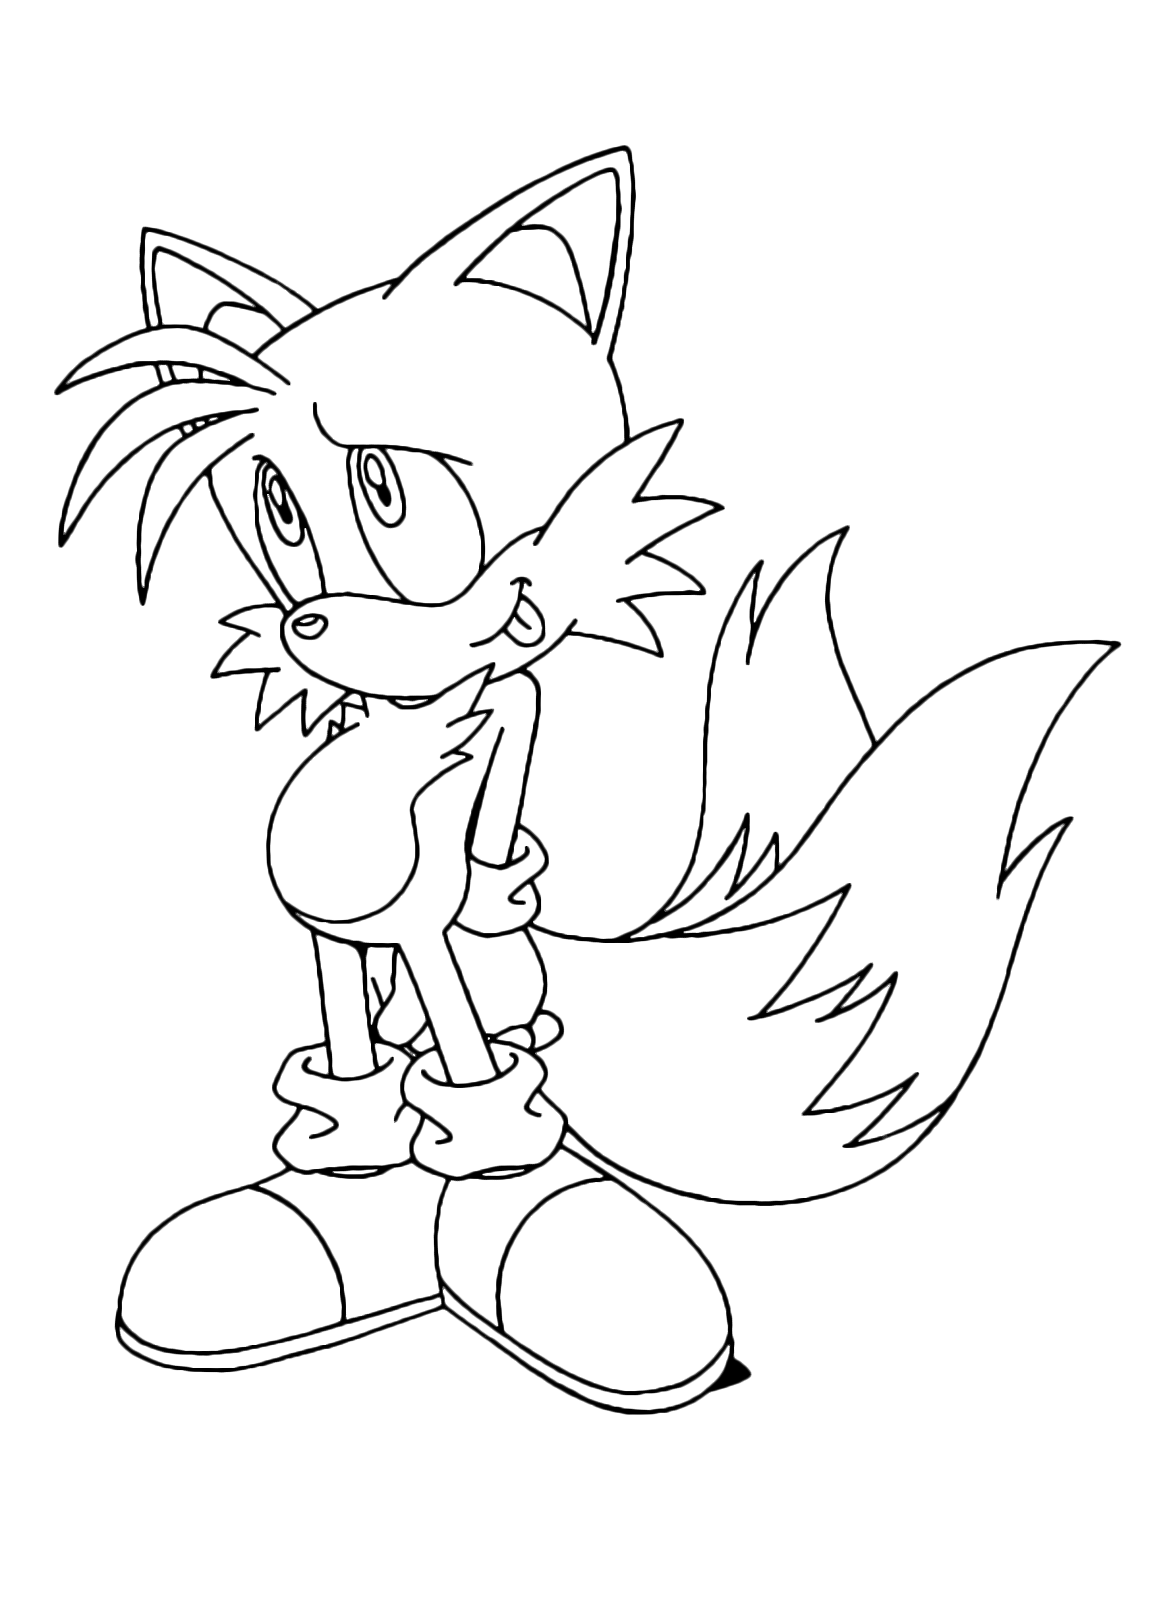 Sonic Boom - Miles Tails Prower th eyellow fox